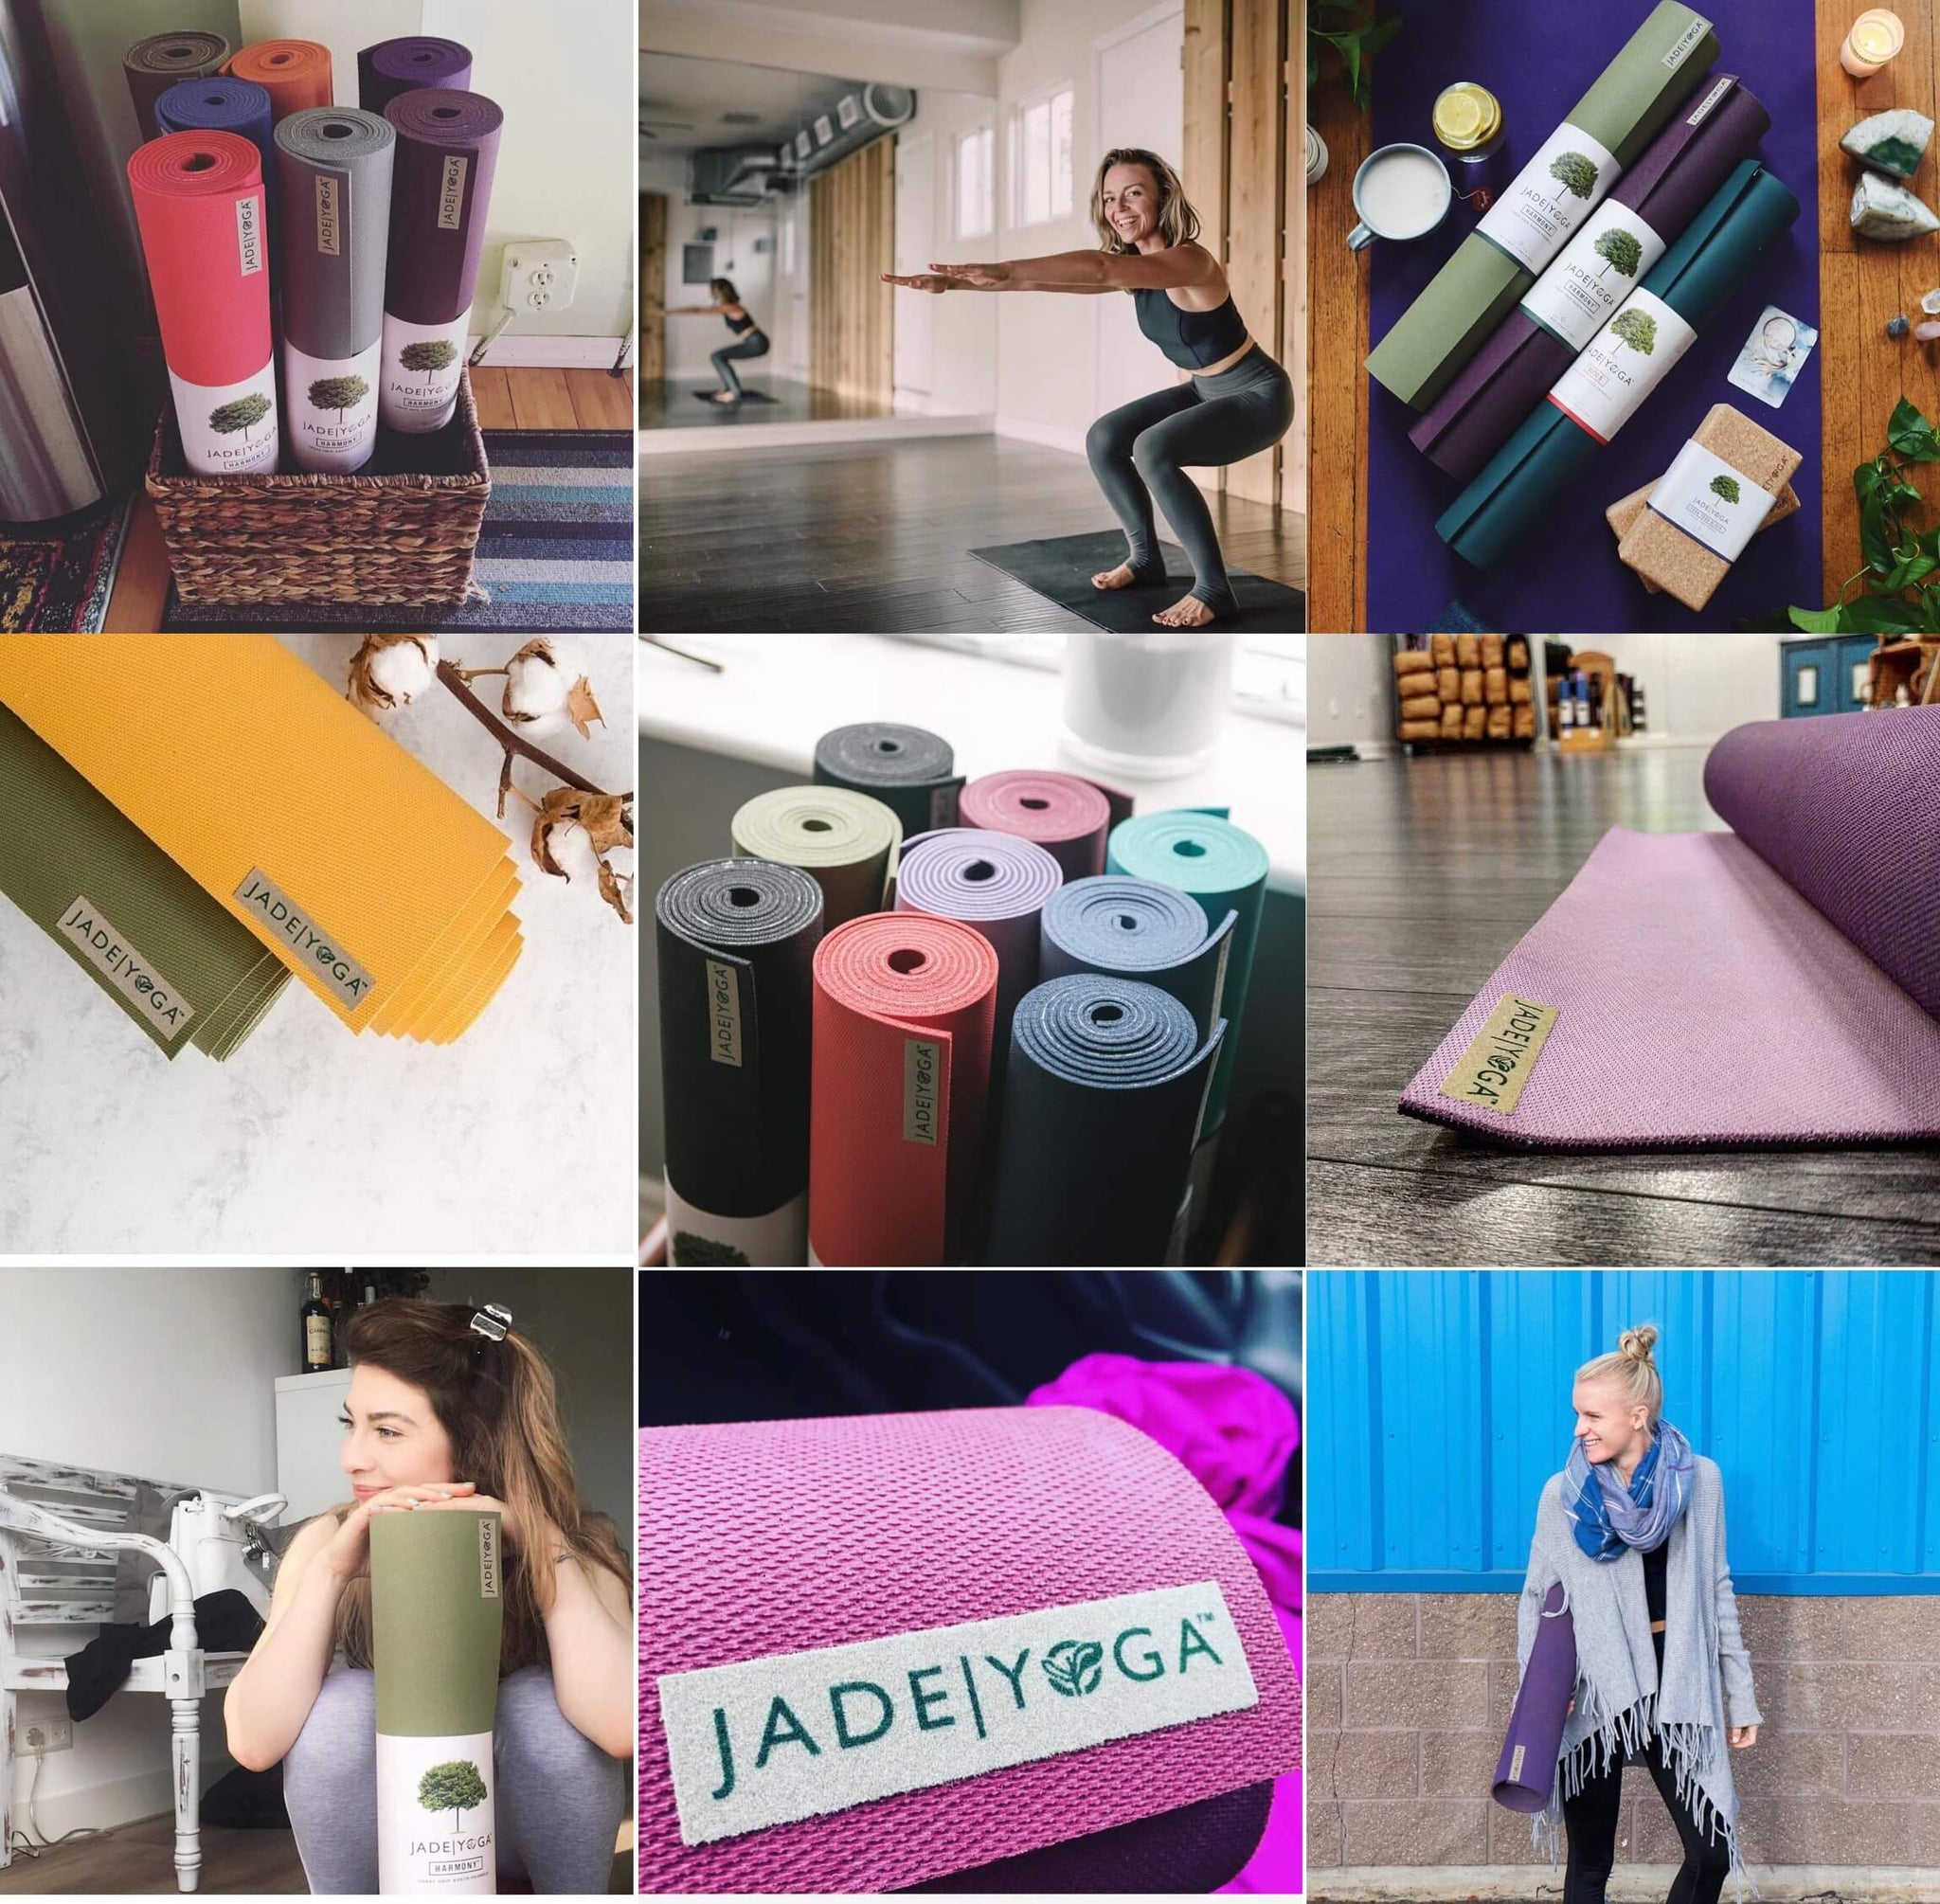 jade yoga mats collection